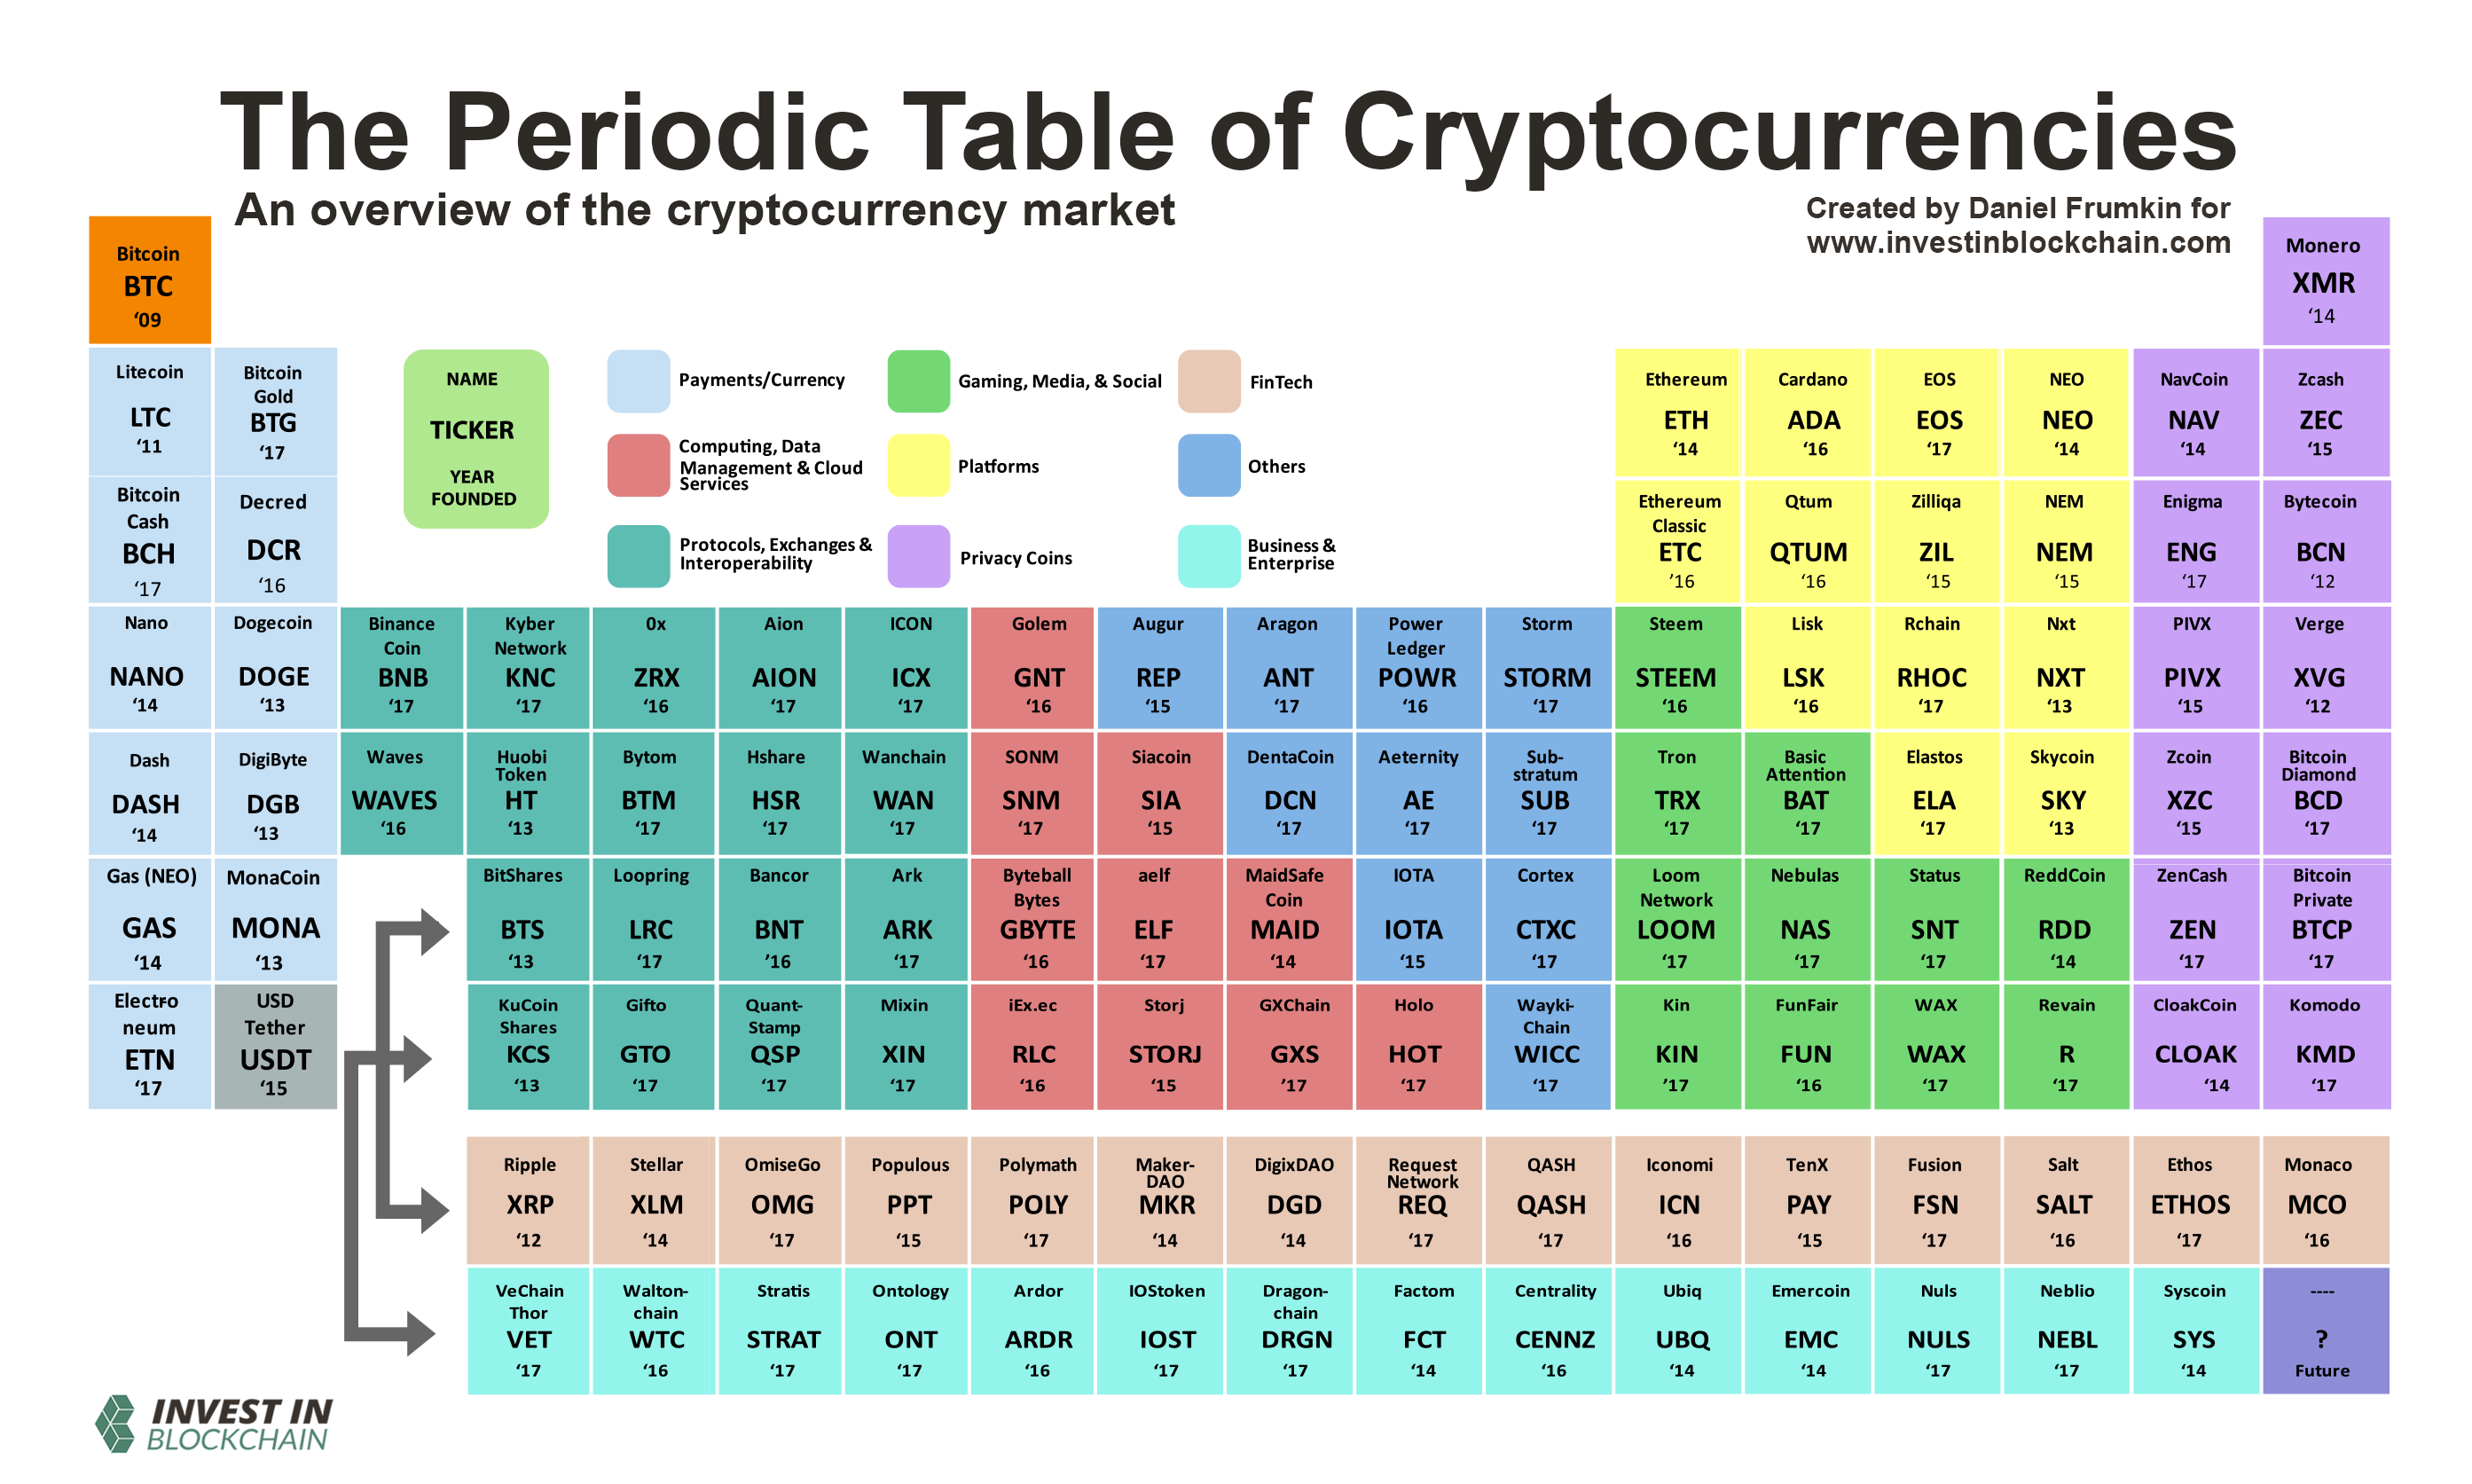 The Periodic Table of Cryptocurrencies: An Overview of the Cryptocurrency Market